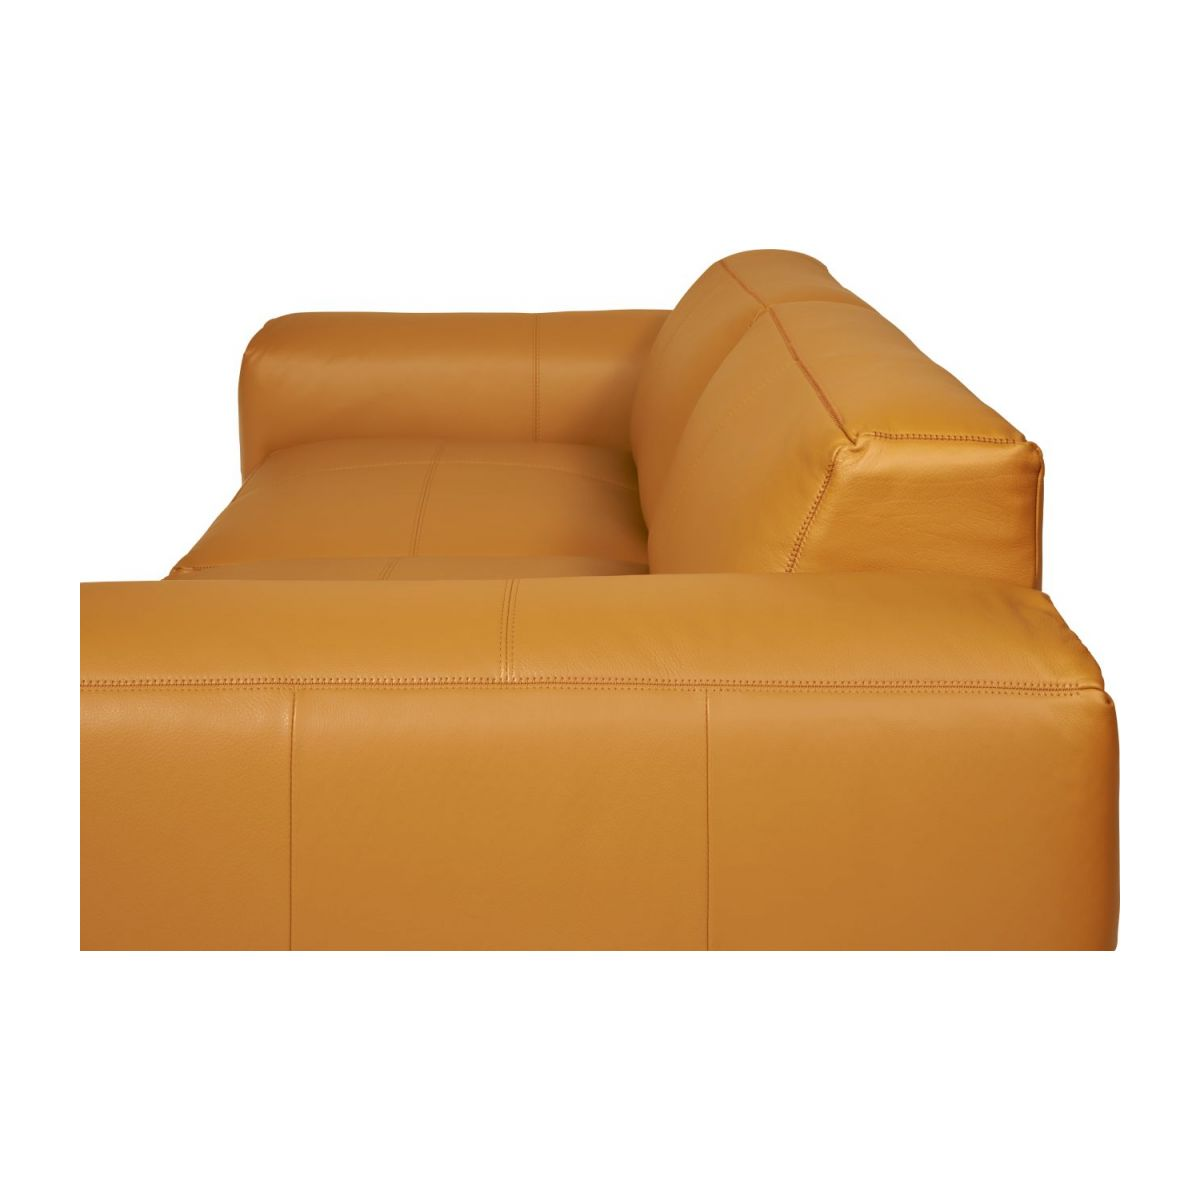 3 seater sofa in Savoy semi-aniline leather, cognac n°10